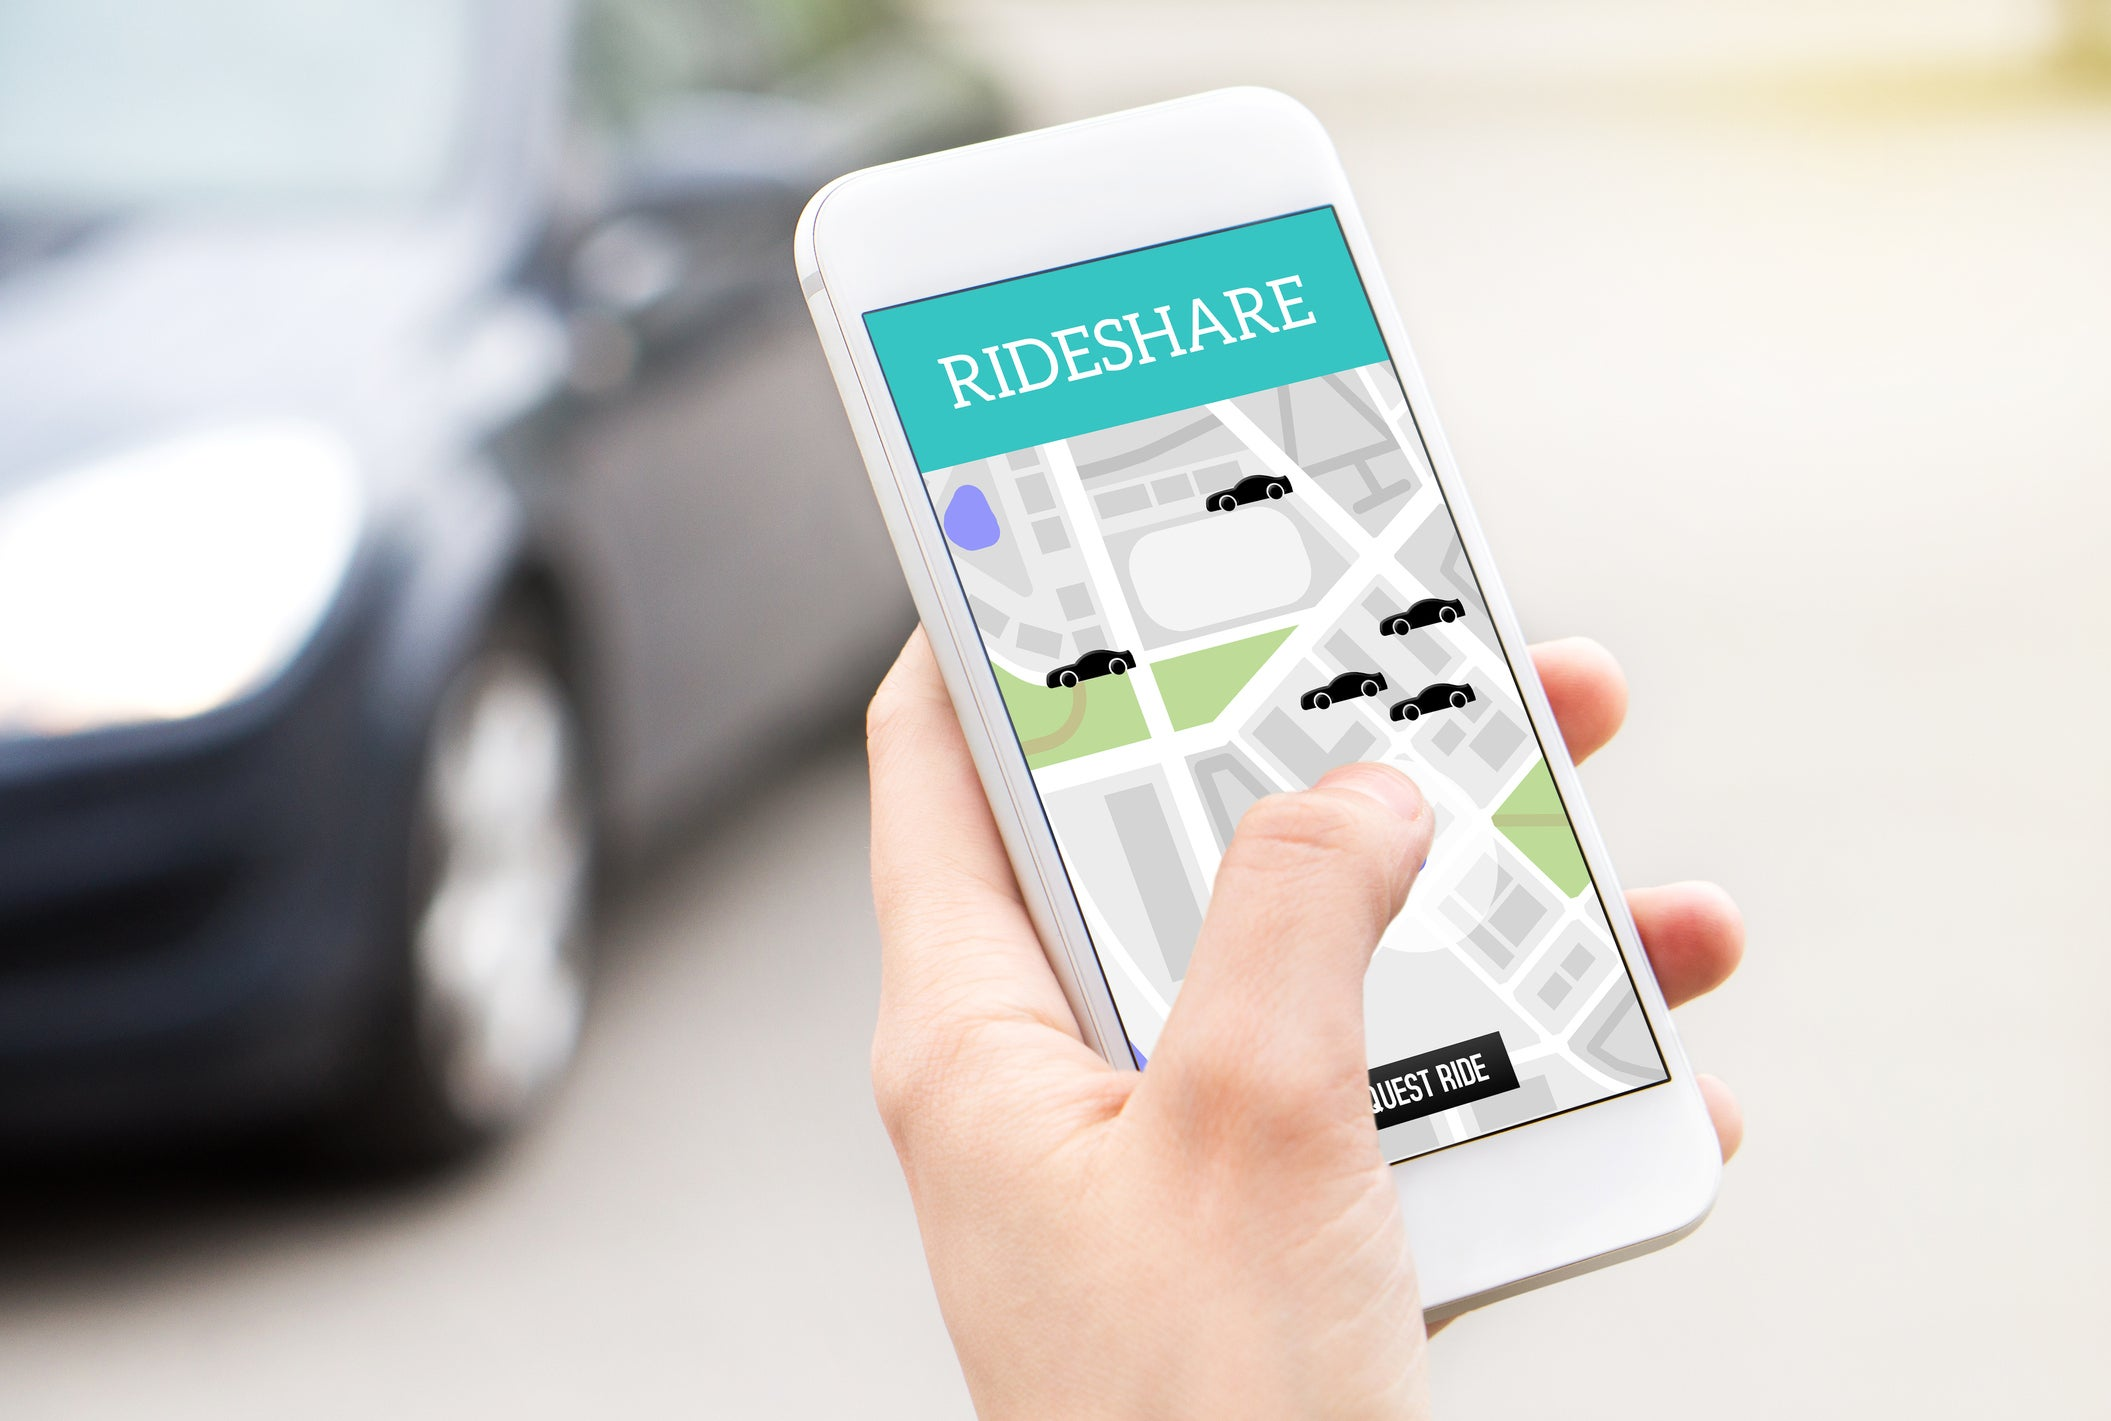 Person holding a smartphone with a ride-sharing app open.